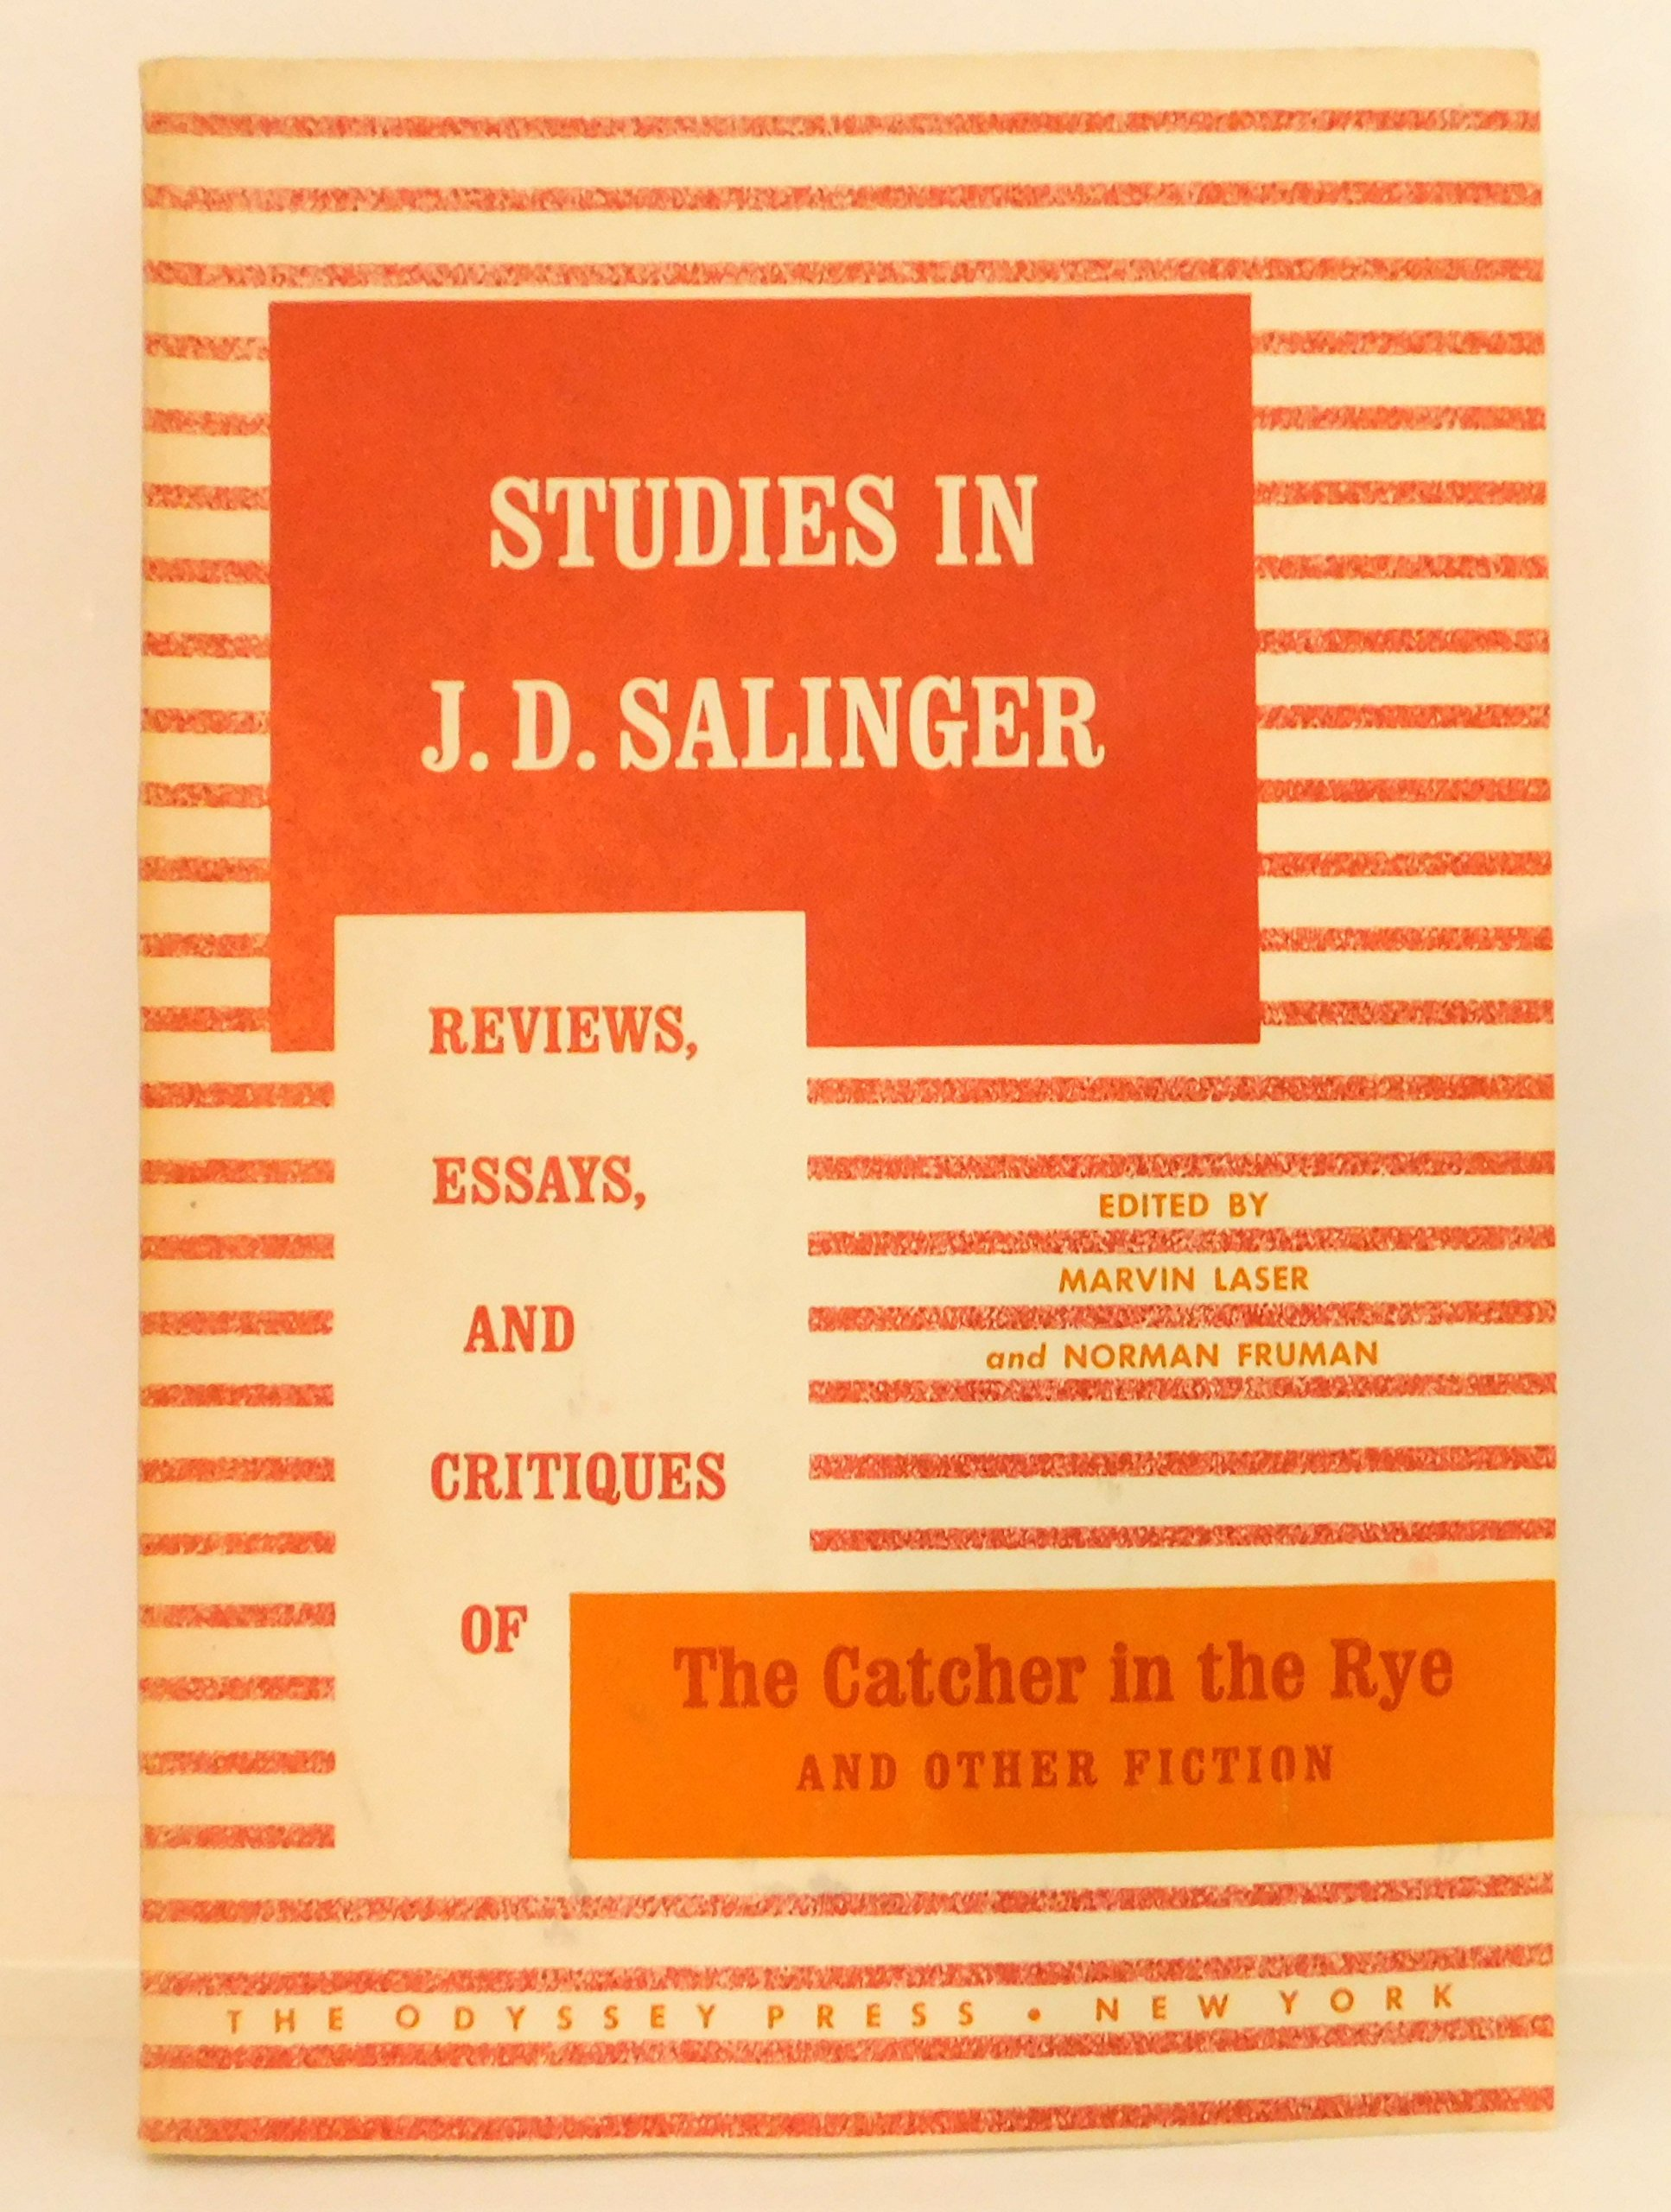 Analytical Essay Thesis Studies In J D Salinger Reviews Essays And Critiques Of The Catcher In  The Rye And Other Fiction Marvin Ed Laser  Amazoncom  Books My First Day Of High School Essay also Research Paper Essay Example Studies In J D Salinger Reviews Essays And Critiques Of The  Abraham Lincoln Essay Paper